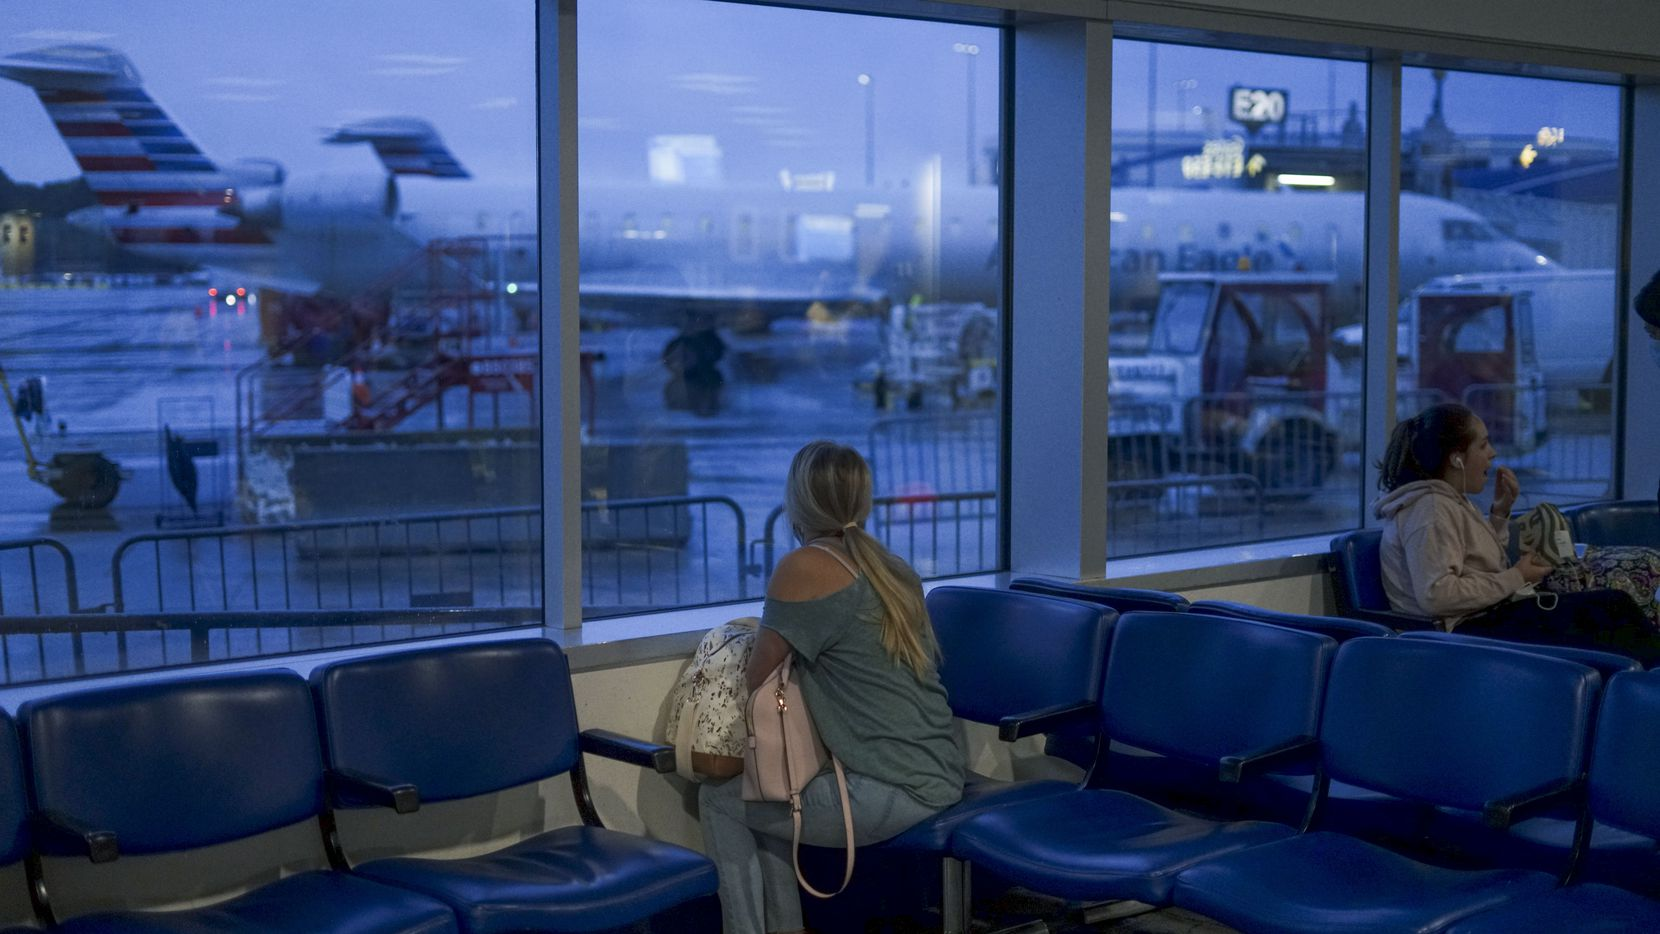 CHARLOTTE, NC - MAY 20:  A passenger waits to board an American Airlines flight to Roanoke, Virginia at Charlotte International Airport on May 20, 2020 in Charlotte, North Carolina. Air travel is down as estimated 94 percent due to the coronavirus (COVID-19) pandemic, causing U.S. airlines to take a major financial hit with losses of $350 million to $400 million a day as nearly half of major carriers' planes sit idle. (Photo by Sandy Huffaker/Getty Images)